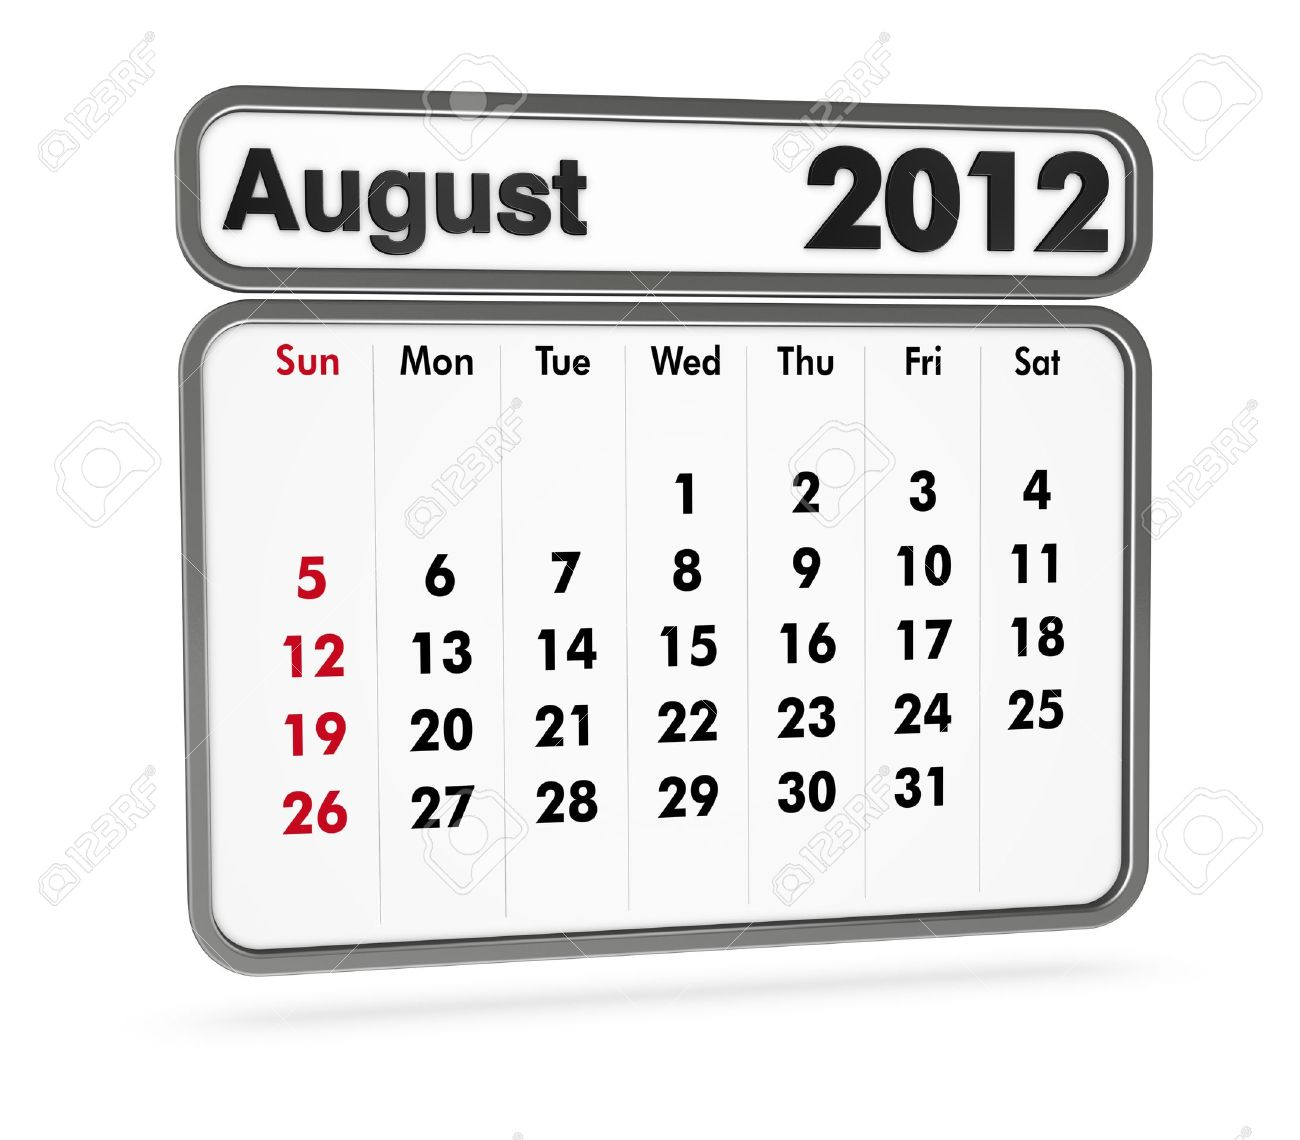 August 2012 calendar clipart image library library August 2012 Calendar On White Background (3d Render) Stock Photo ... image library library